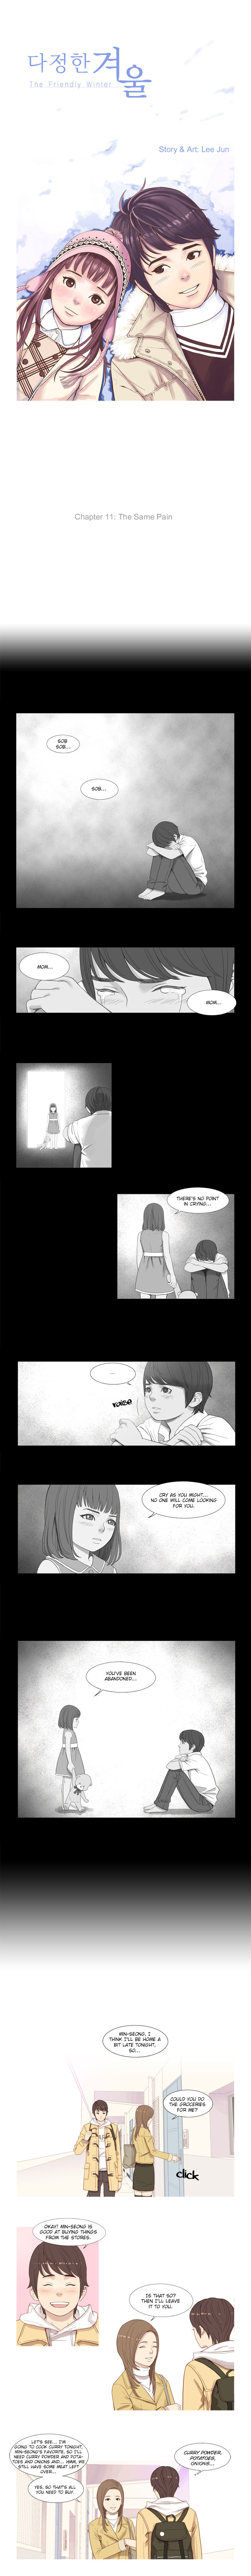 The Friendly Winter 11 Page 2